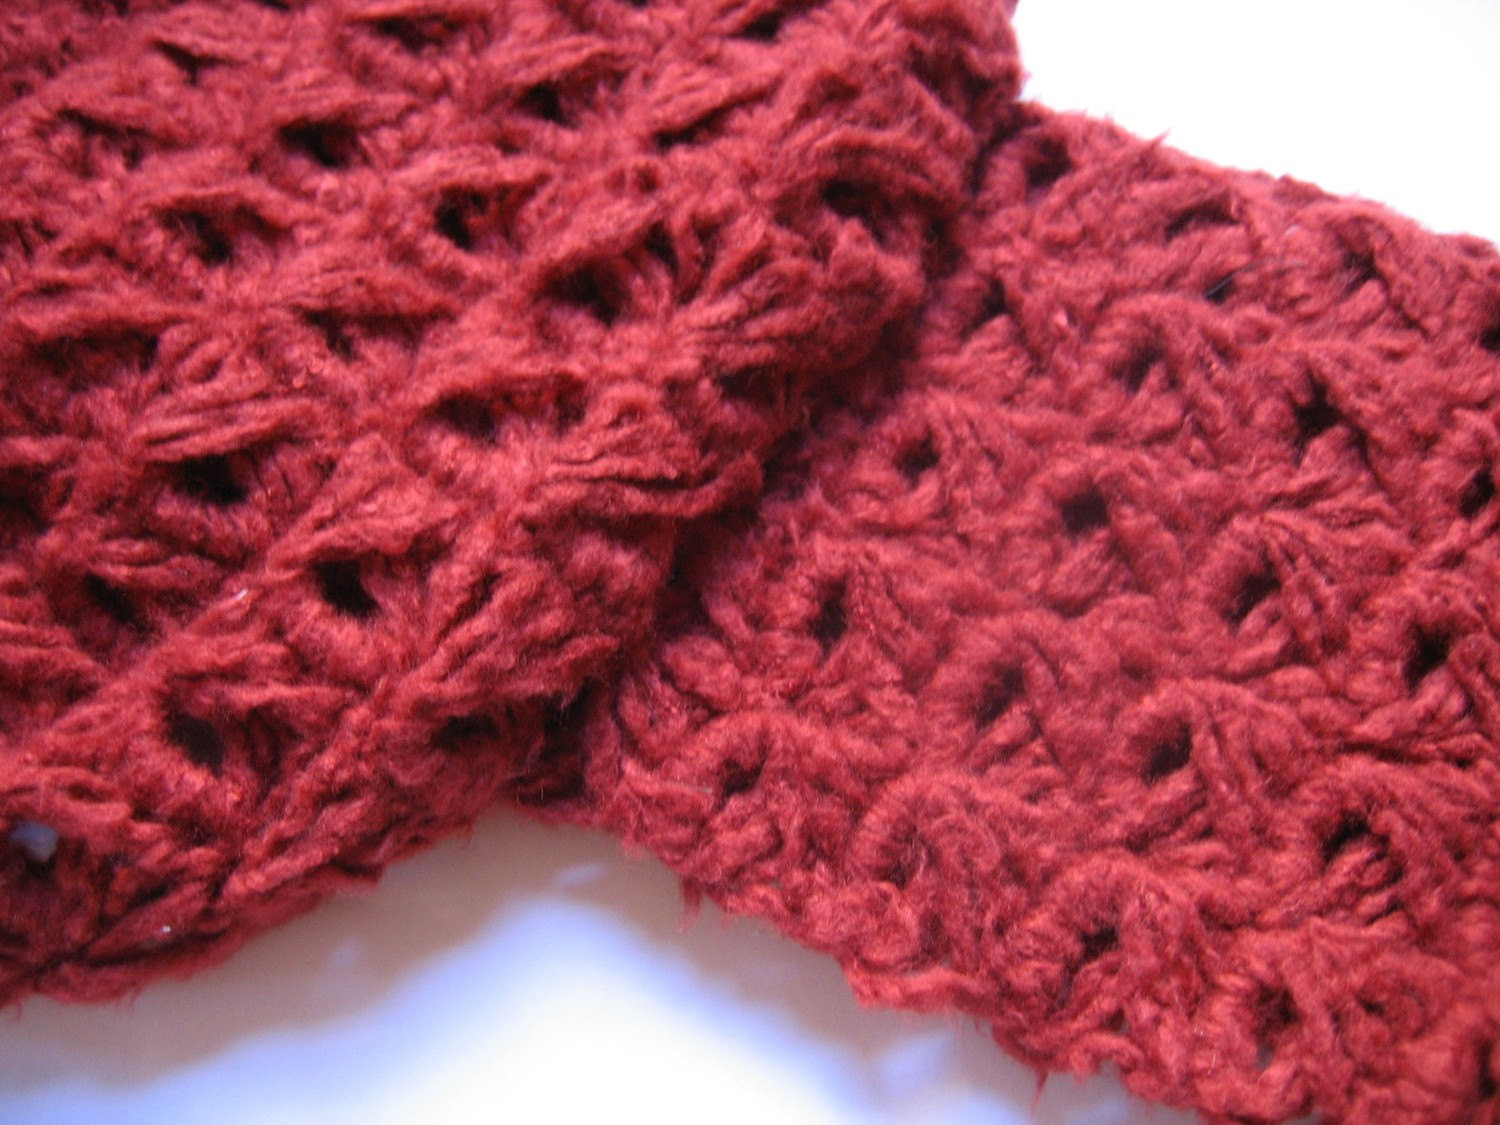 New Crochet Broomstick Lace Broomstick Lace Crochet Of Wonderful 49 Ideas Broomstick Lace Crochet